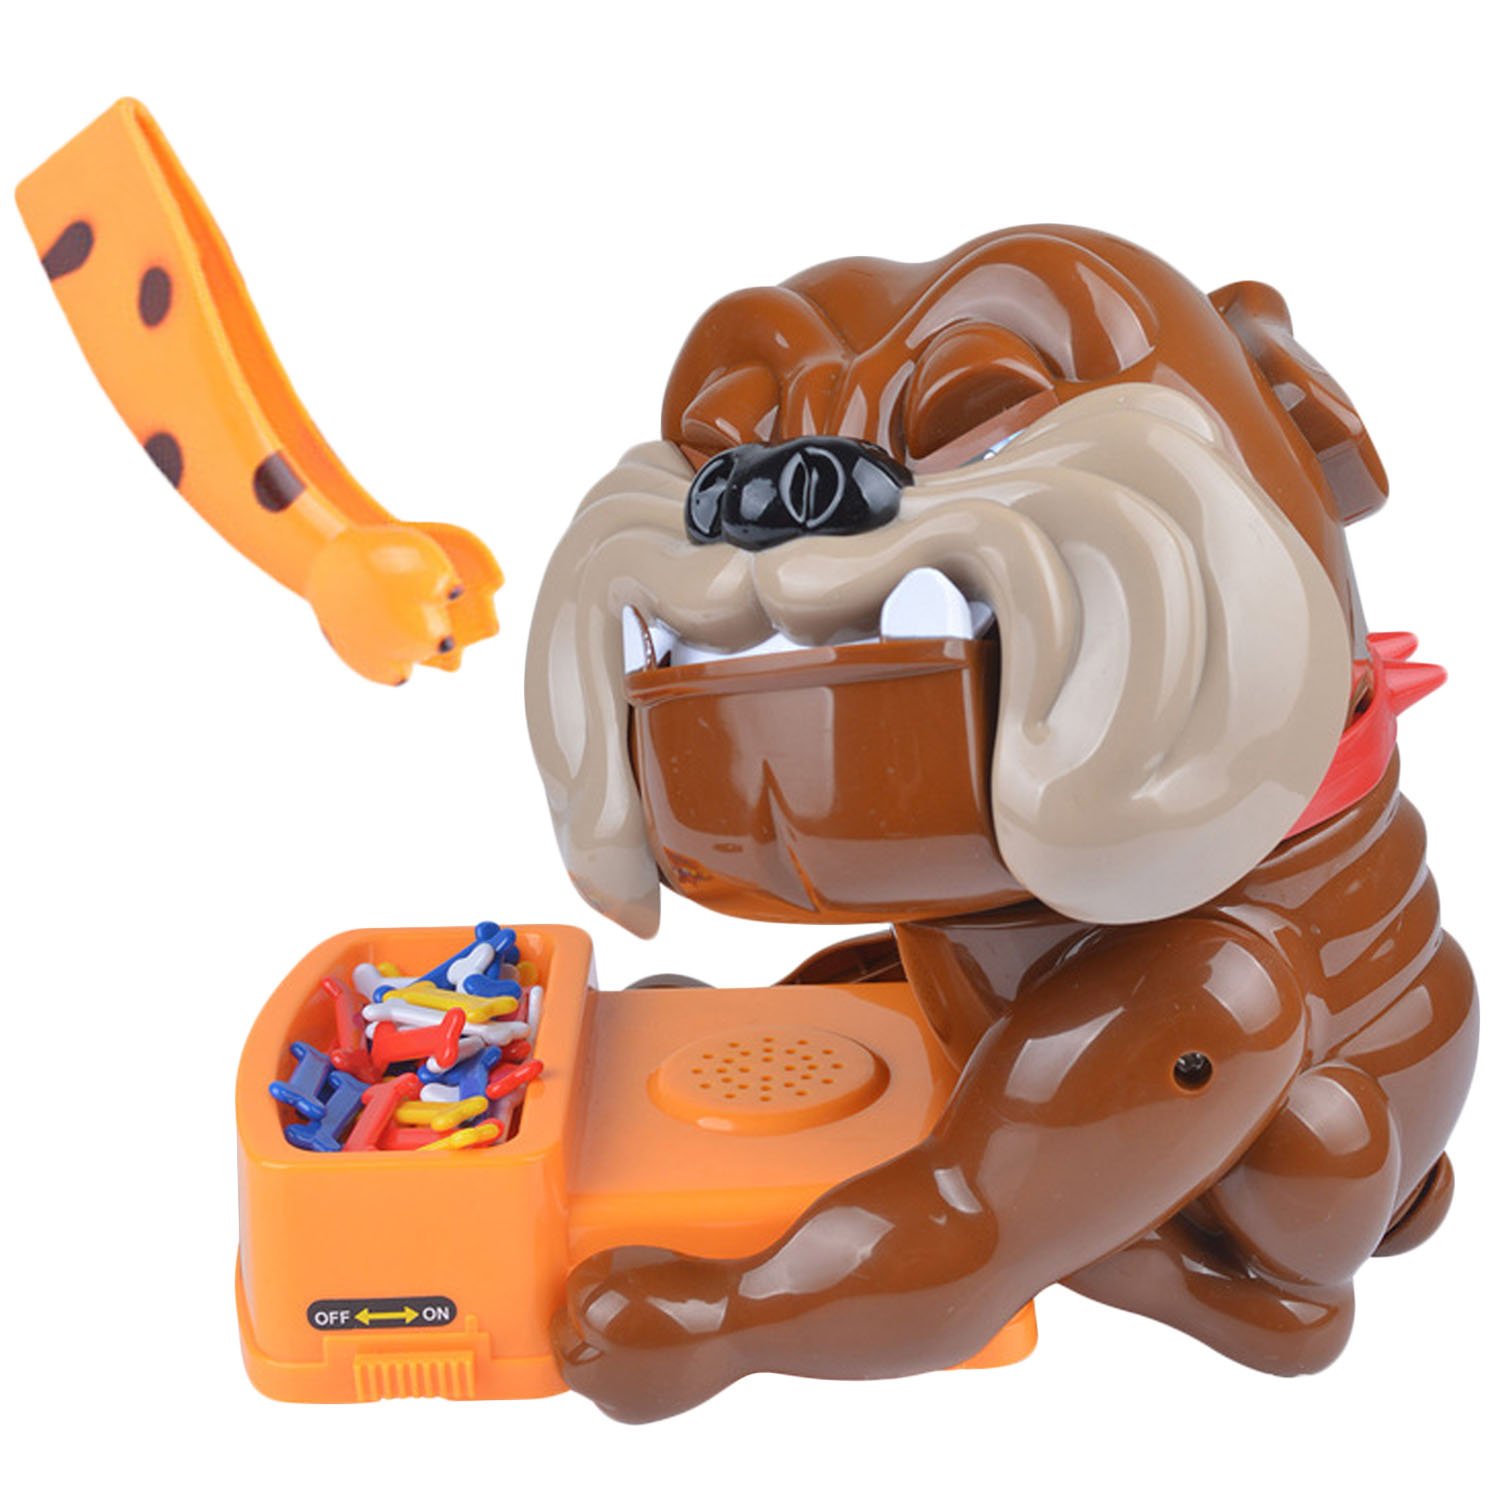 Besegad Funny Tricky Games Bad Dog Chew Bone Action Games Biting Wake Dog Interactive Toys for Party Family Parents Kids Friends|Gags & Practical Jokes|   - AliExpress